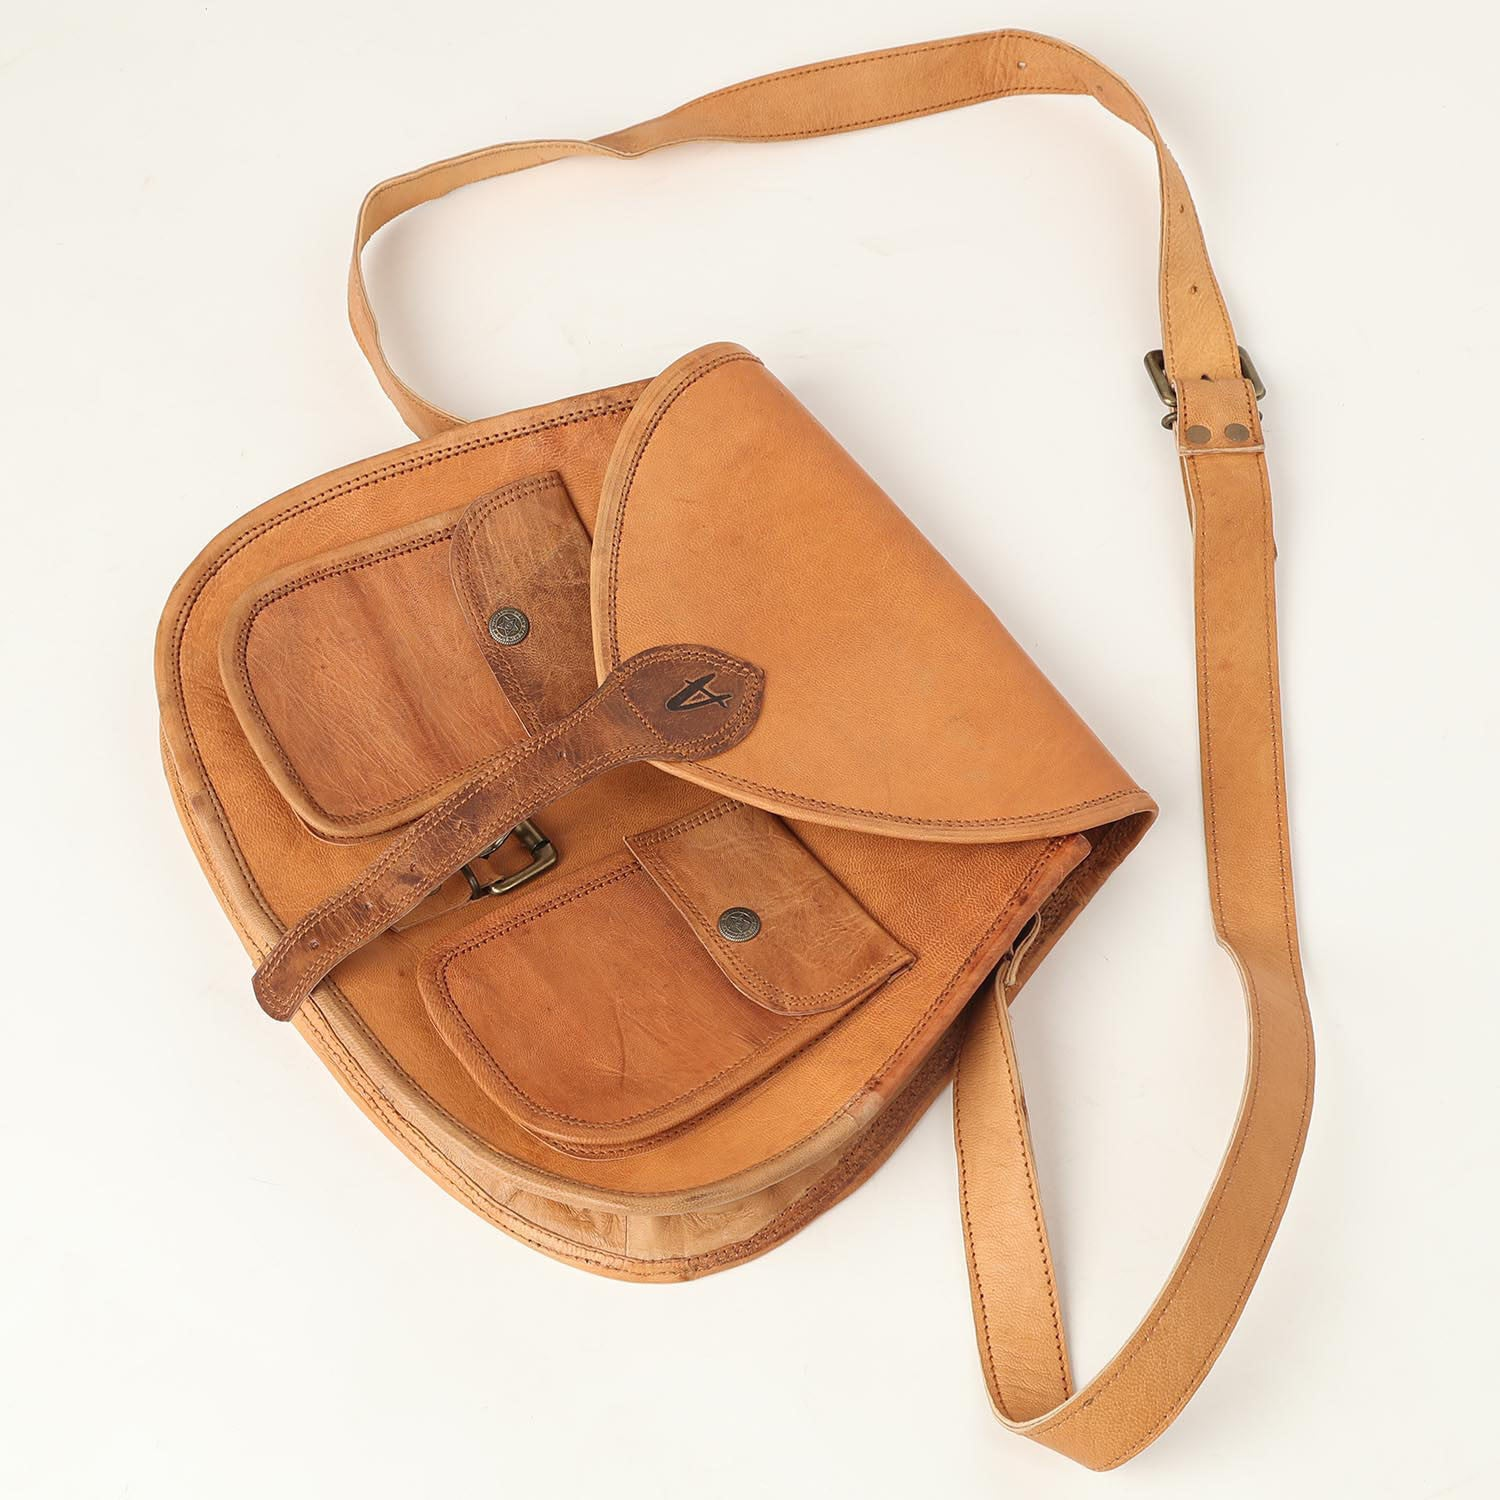 US Cross Body Bag